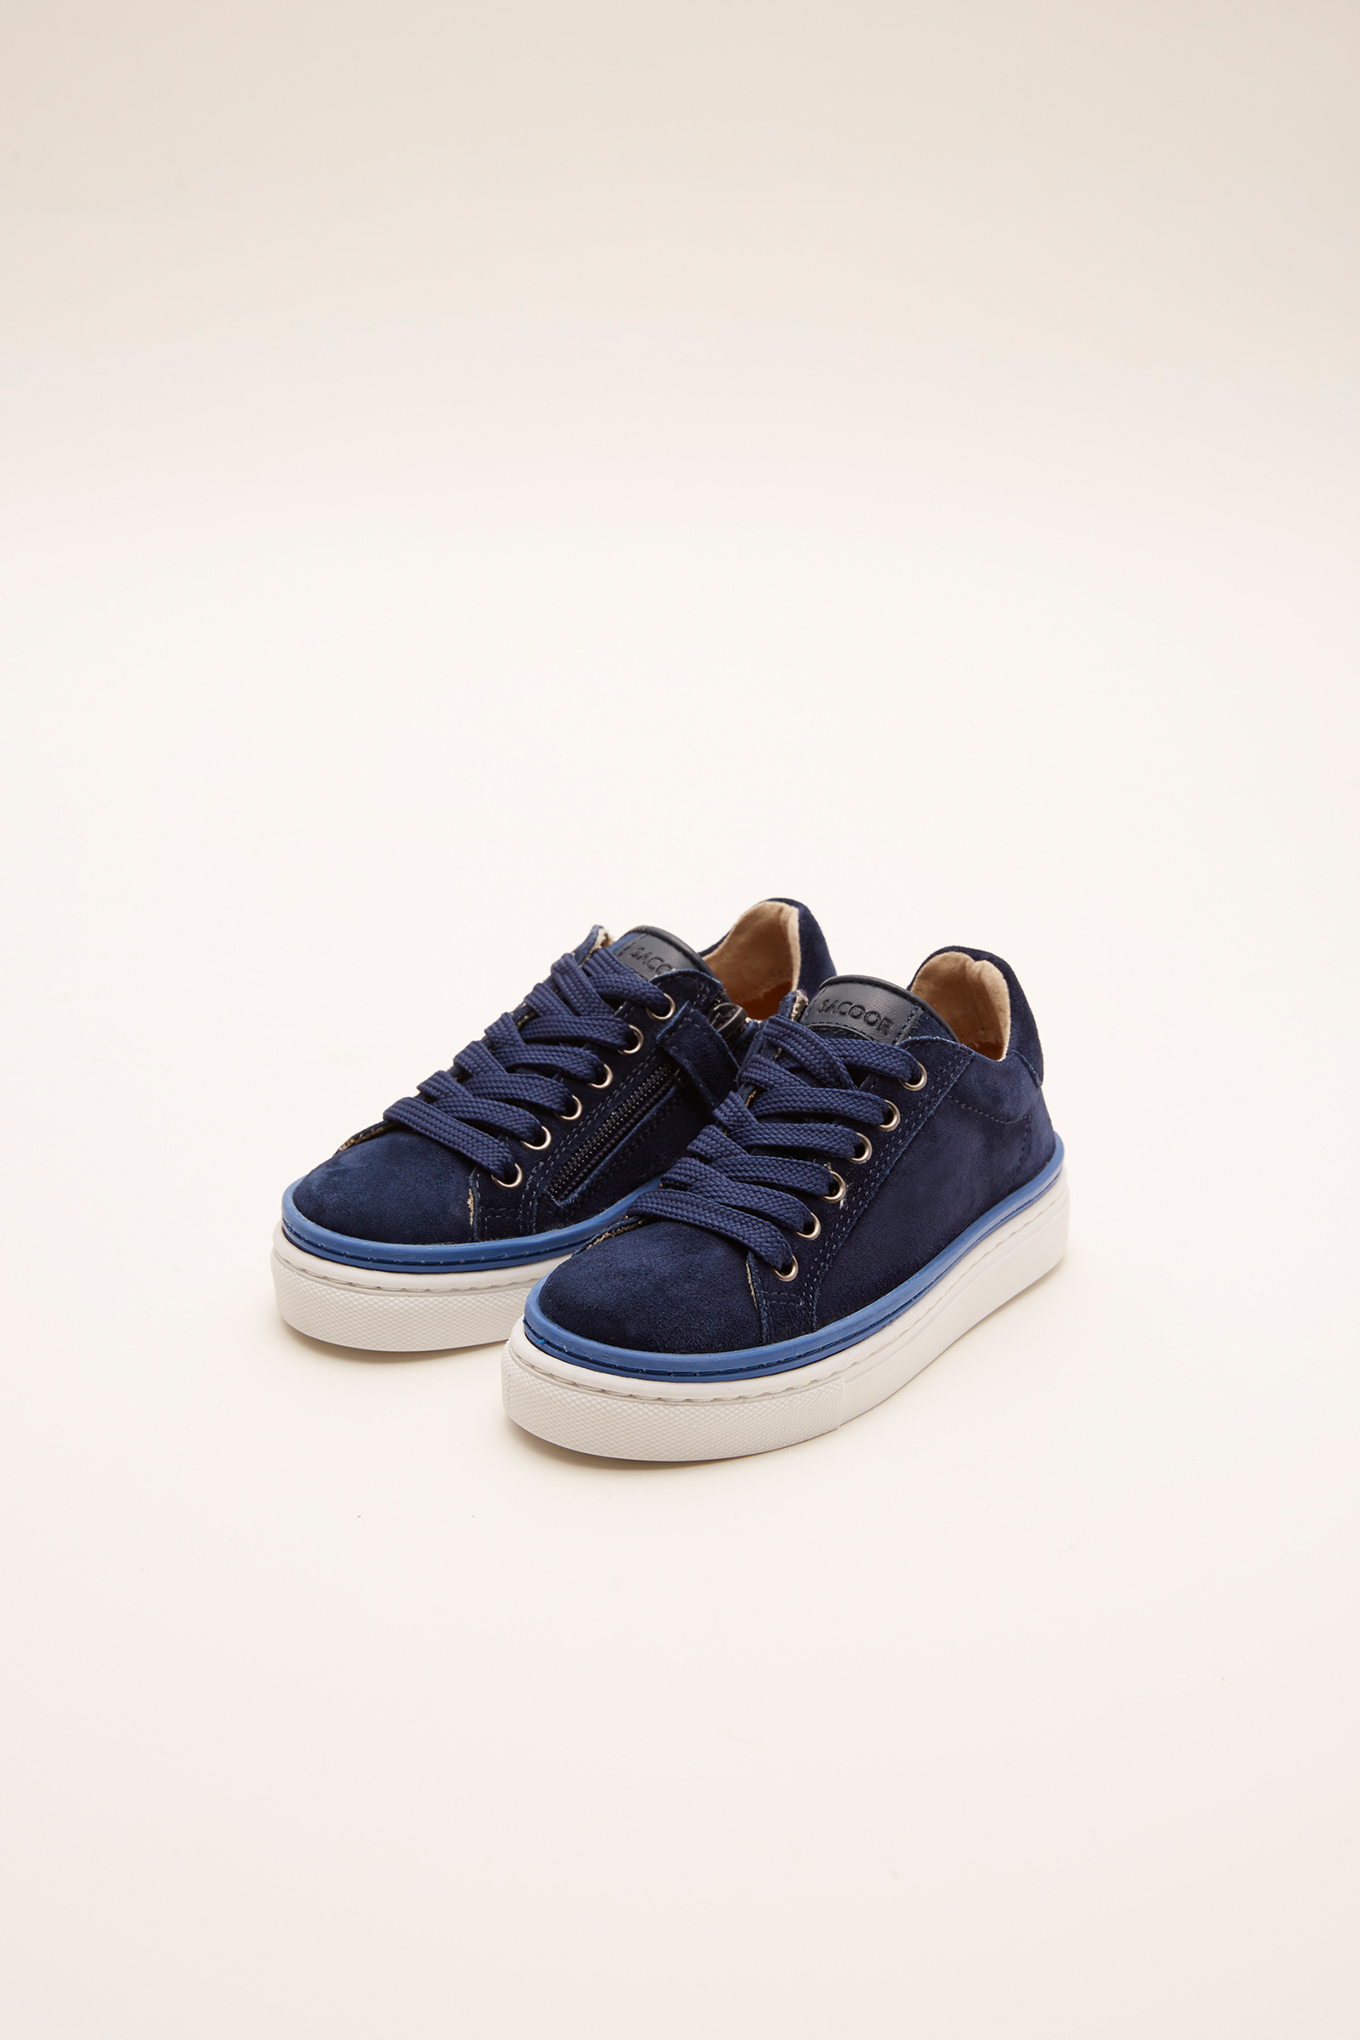 Tennis Dark Blue Casual Boy